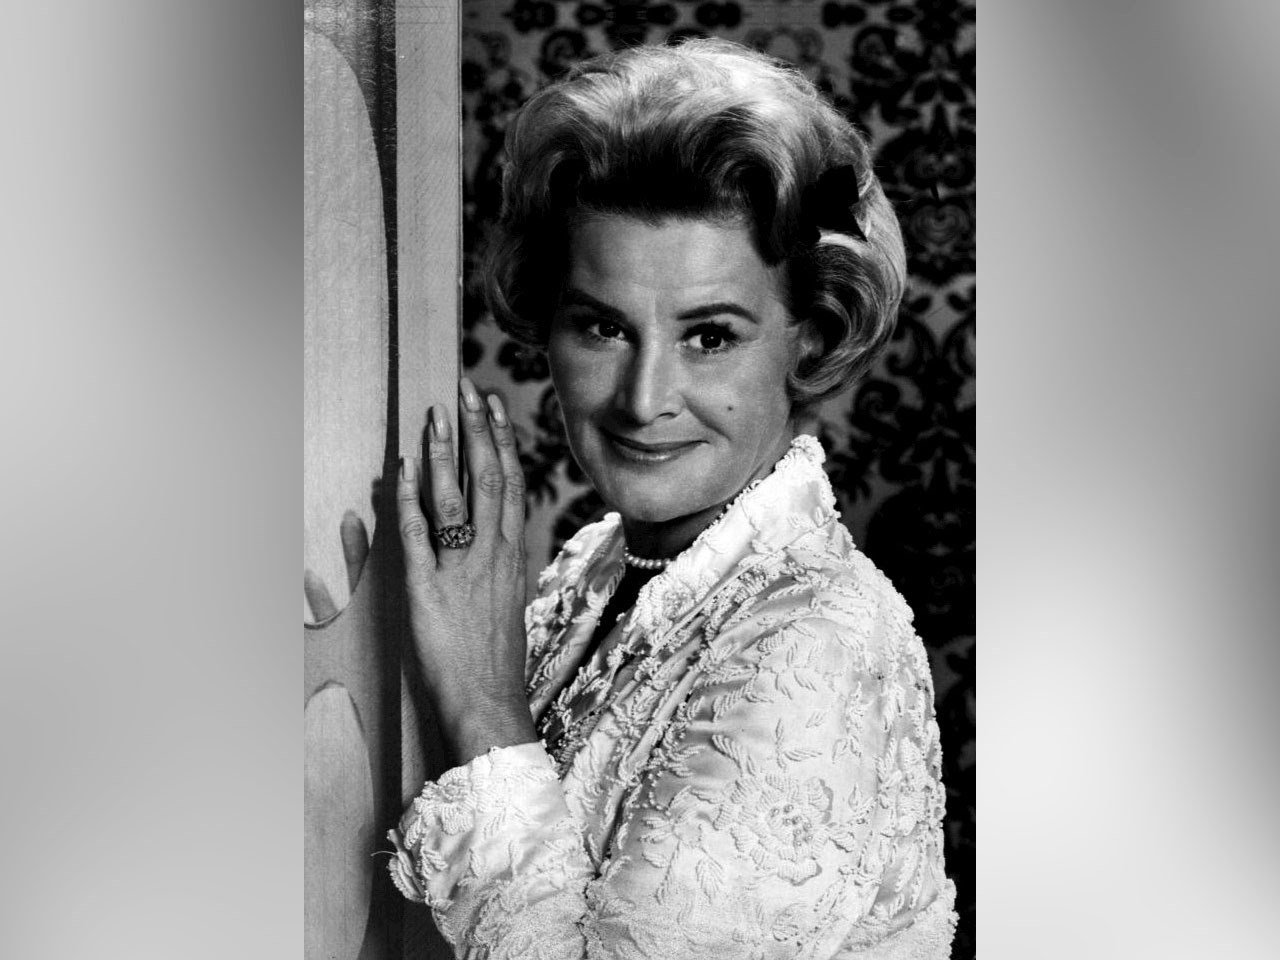 Rose Marie of 'The Dick Van Dyke Show' dies